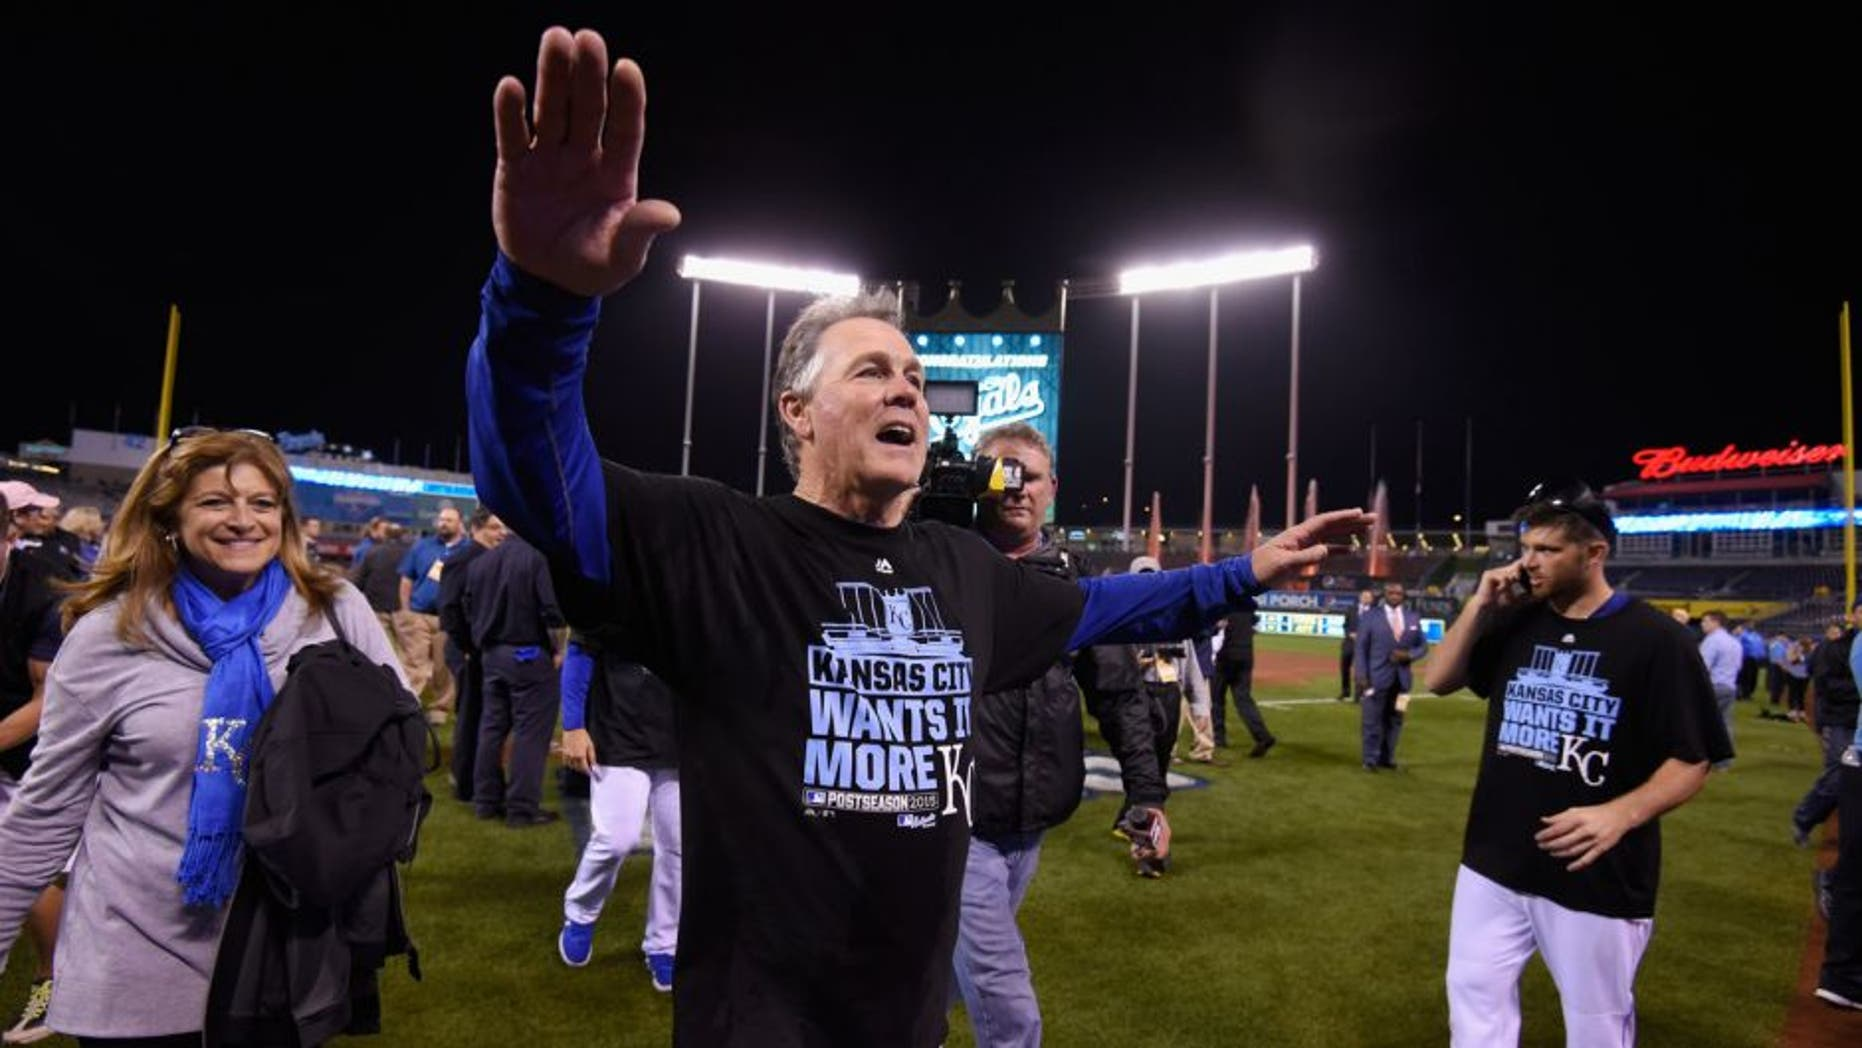 KANSAS CITY, MO - OCTOBER 14: Manager Ned Yost #3 of the Kansas City Royals celebrates after the Kansas City Royals defeat the Houston Astros 7-2 in game five of the American League Divison Series at Kauffman Stadium on October 14, 2015 in Kansas City, Missouri. (Photo by Ed Zurga/Getty Images)